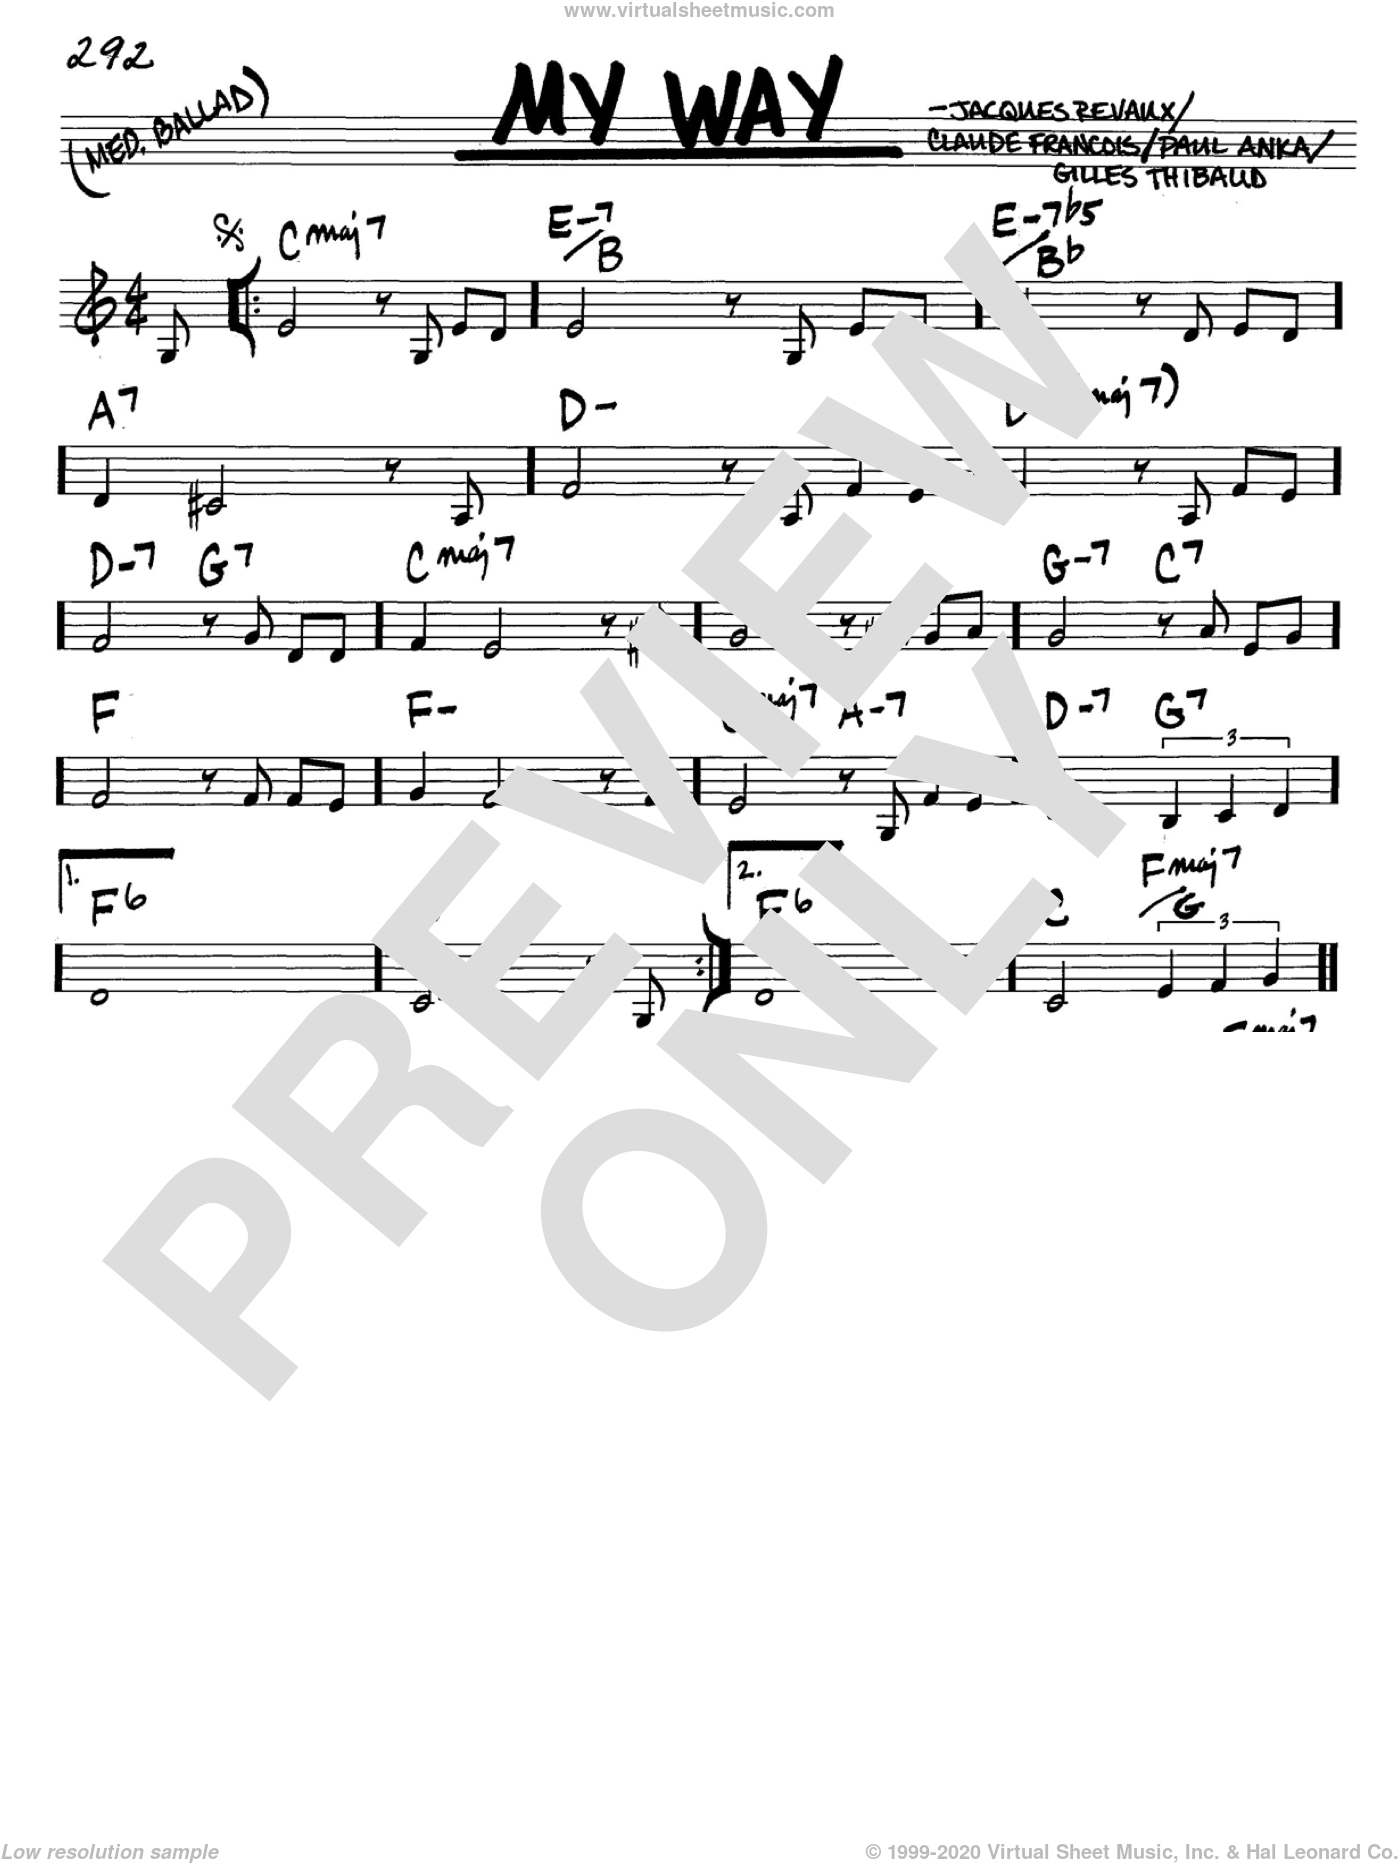 My Way sheet music for voice and other instruments (C) by Jacques Revaux, Elvis Presley, Frank Sinatra, Claude Francois and Paul Anka. Score Image Preview.